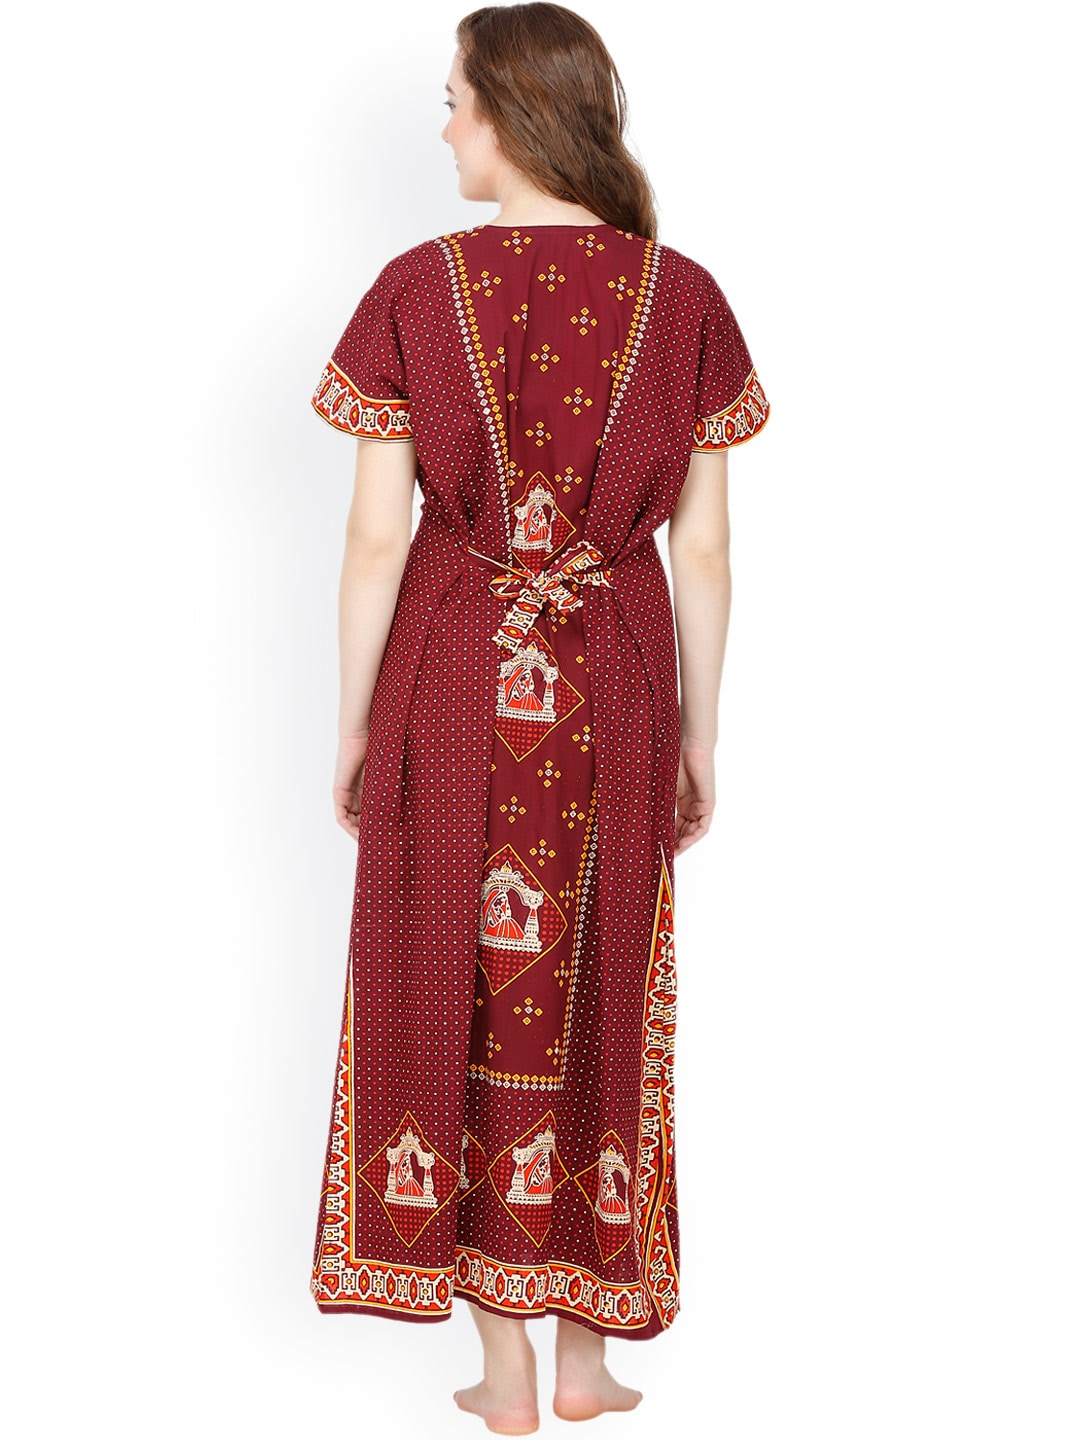 Sleeping Gowns for Women   Dress images